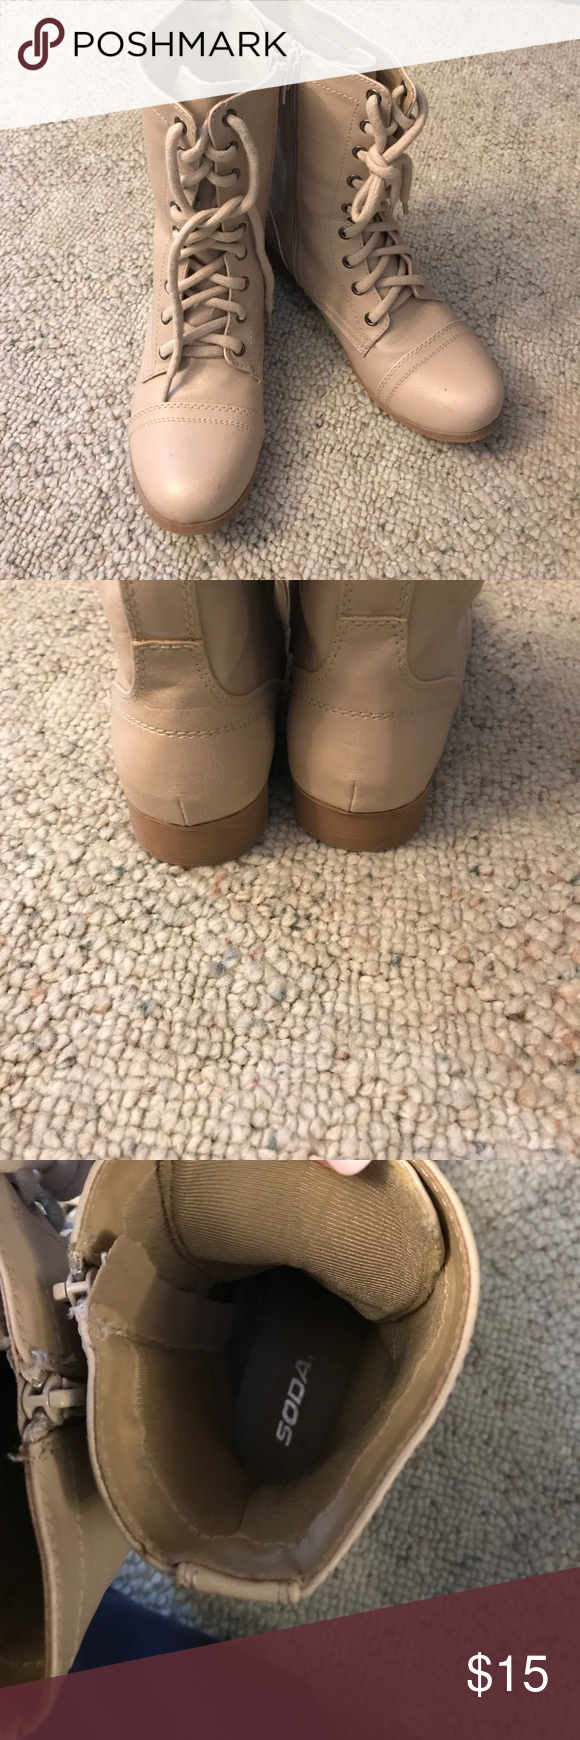 Beige boots In great condition only worn once.  Size 8 Soda Shoes Lace Up Boots